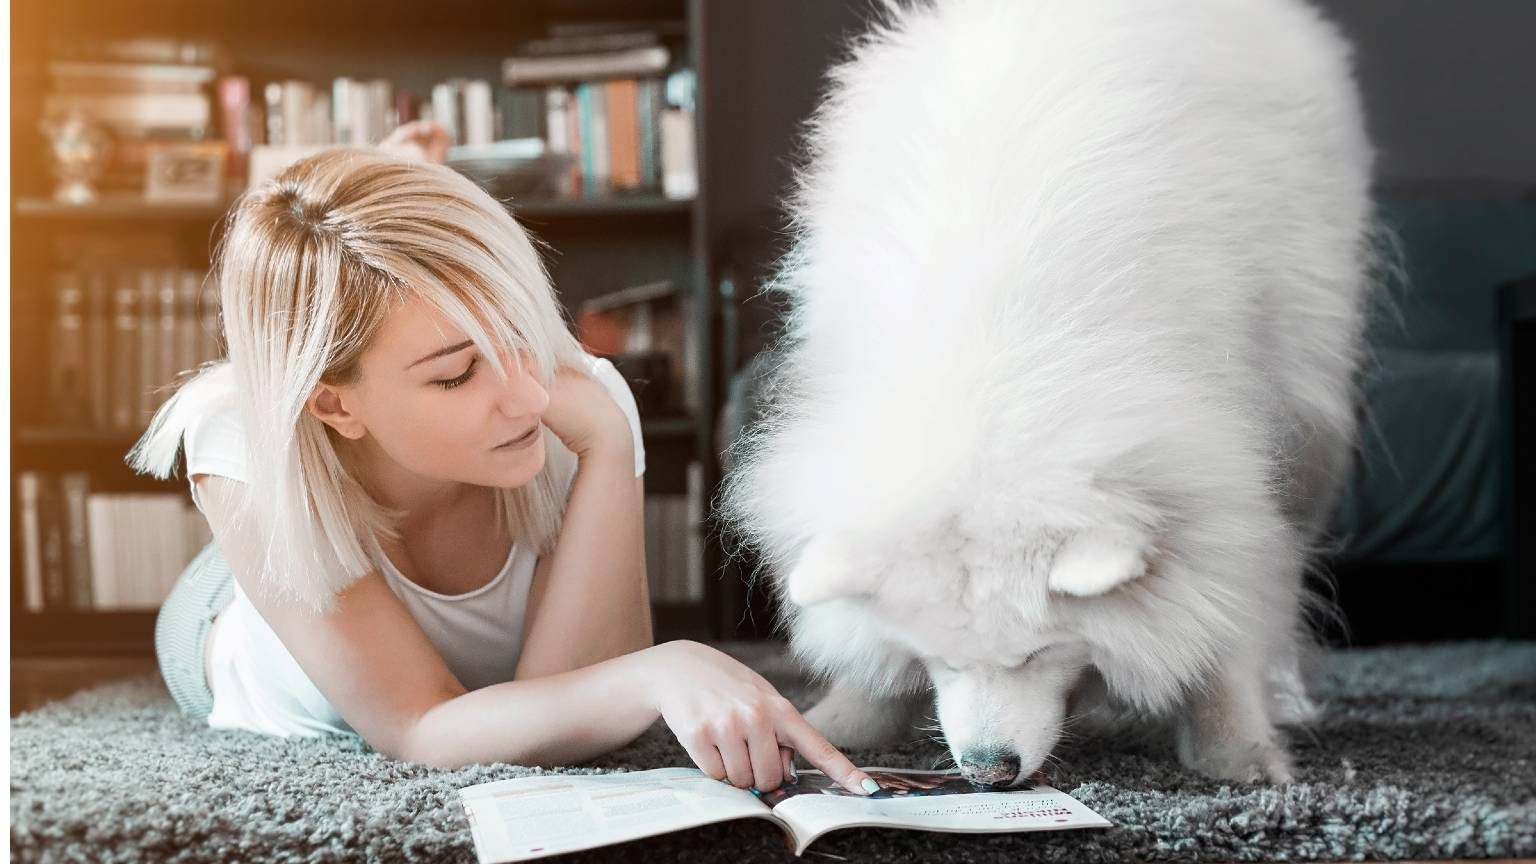 Woman pointing at magazine while lying by dog on floor at home